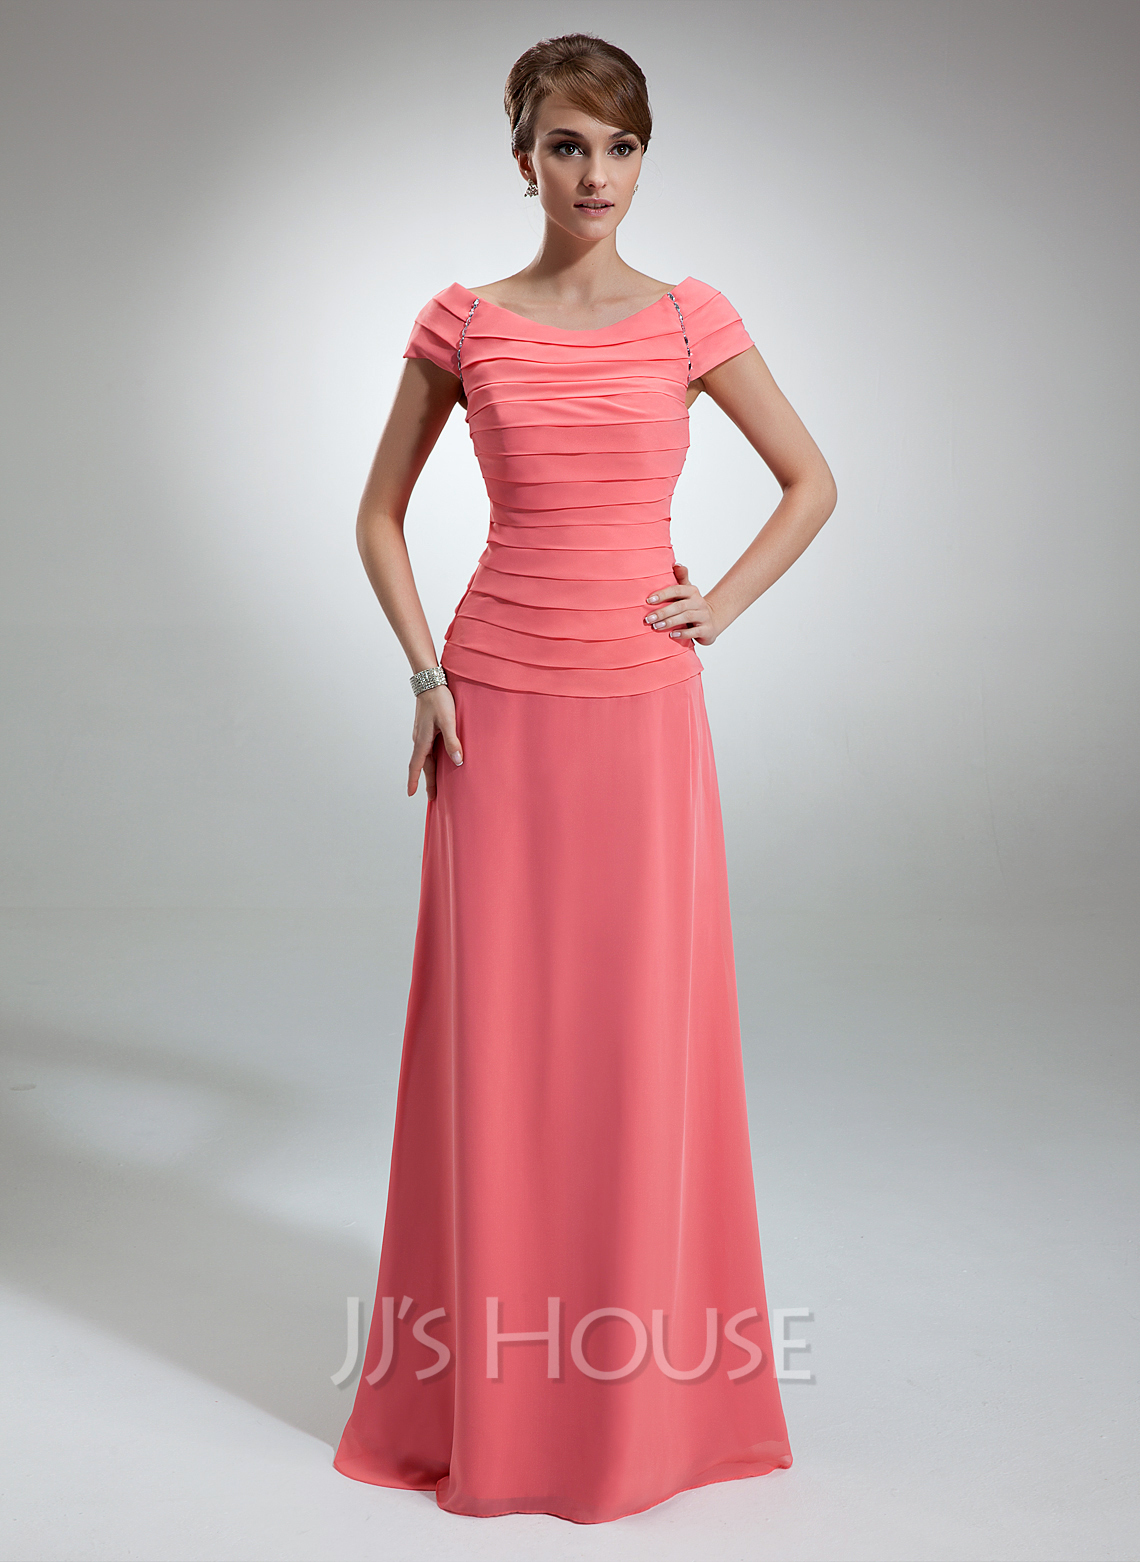 A-Line Off-the-Shoulder Floor-Length Chiffon Mother of the Bride Dress With Ruffle Beading